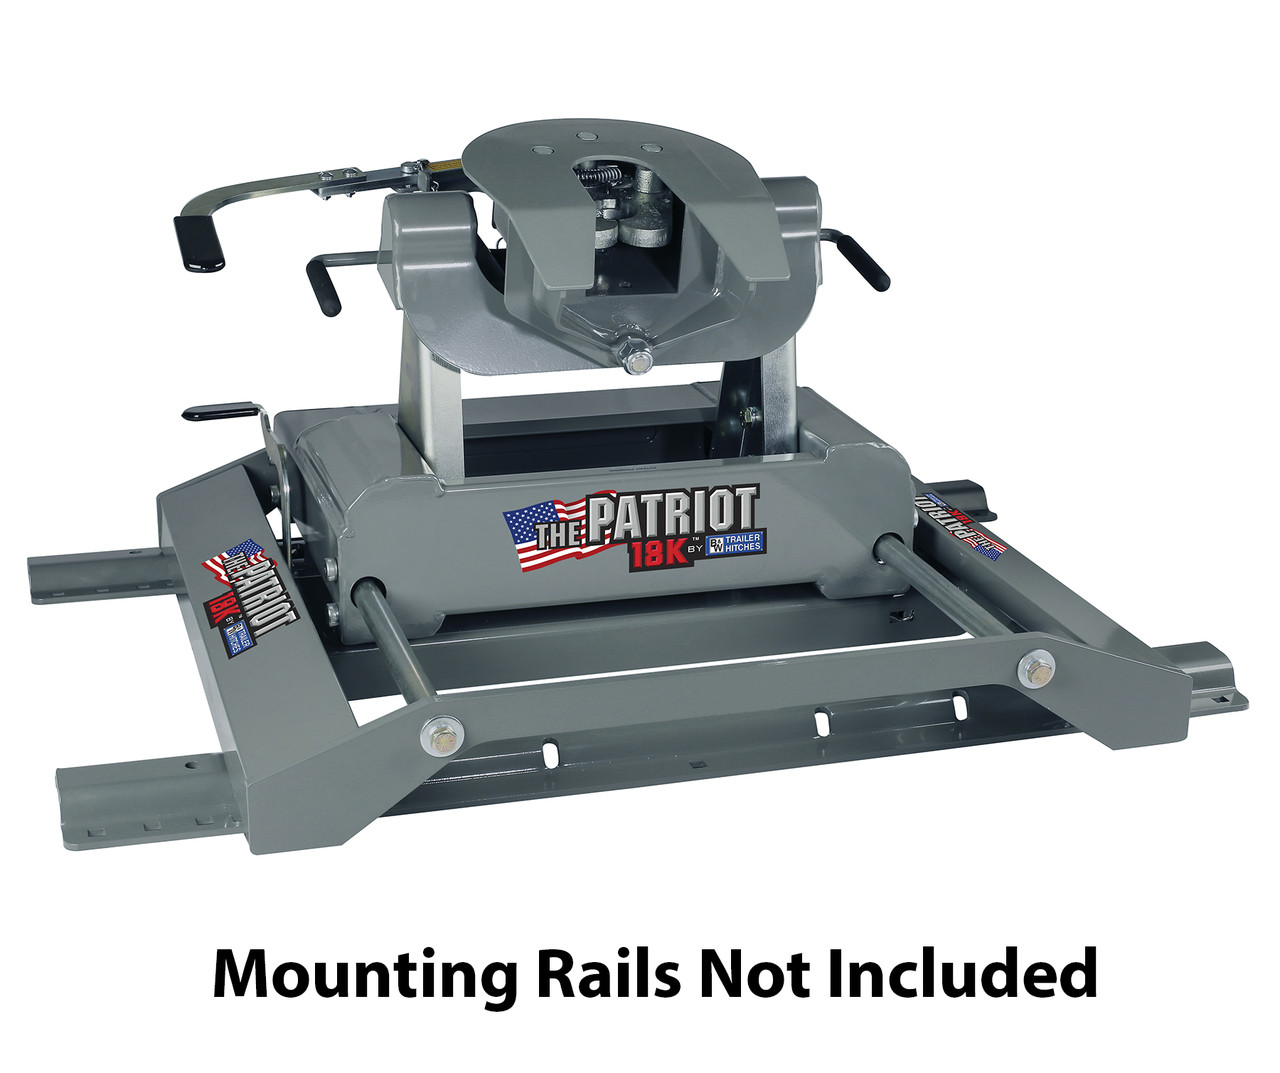 5th Wheel Hitch Mounting Rails Assembly Diagram For The Reese Titan 20k Fifth Part Bw Patriot Slider Made 1280x1073